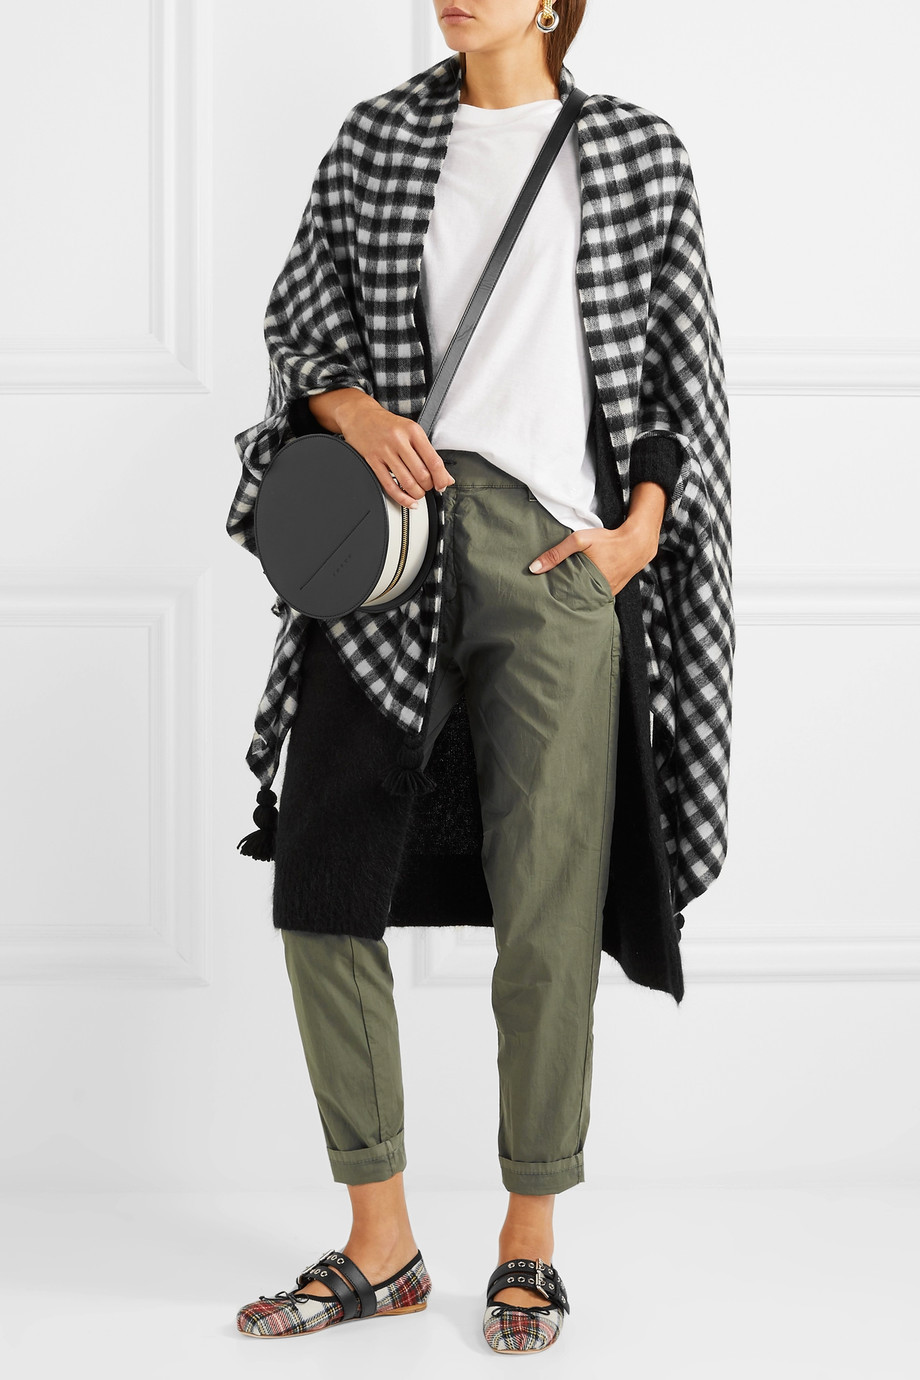 J. Crew Tasseled check wool-blend cape $80